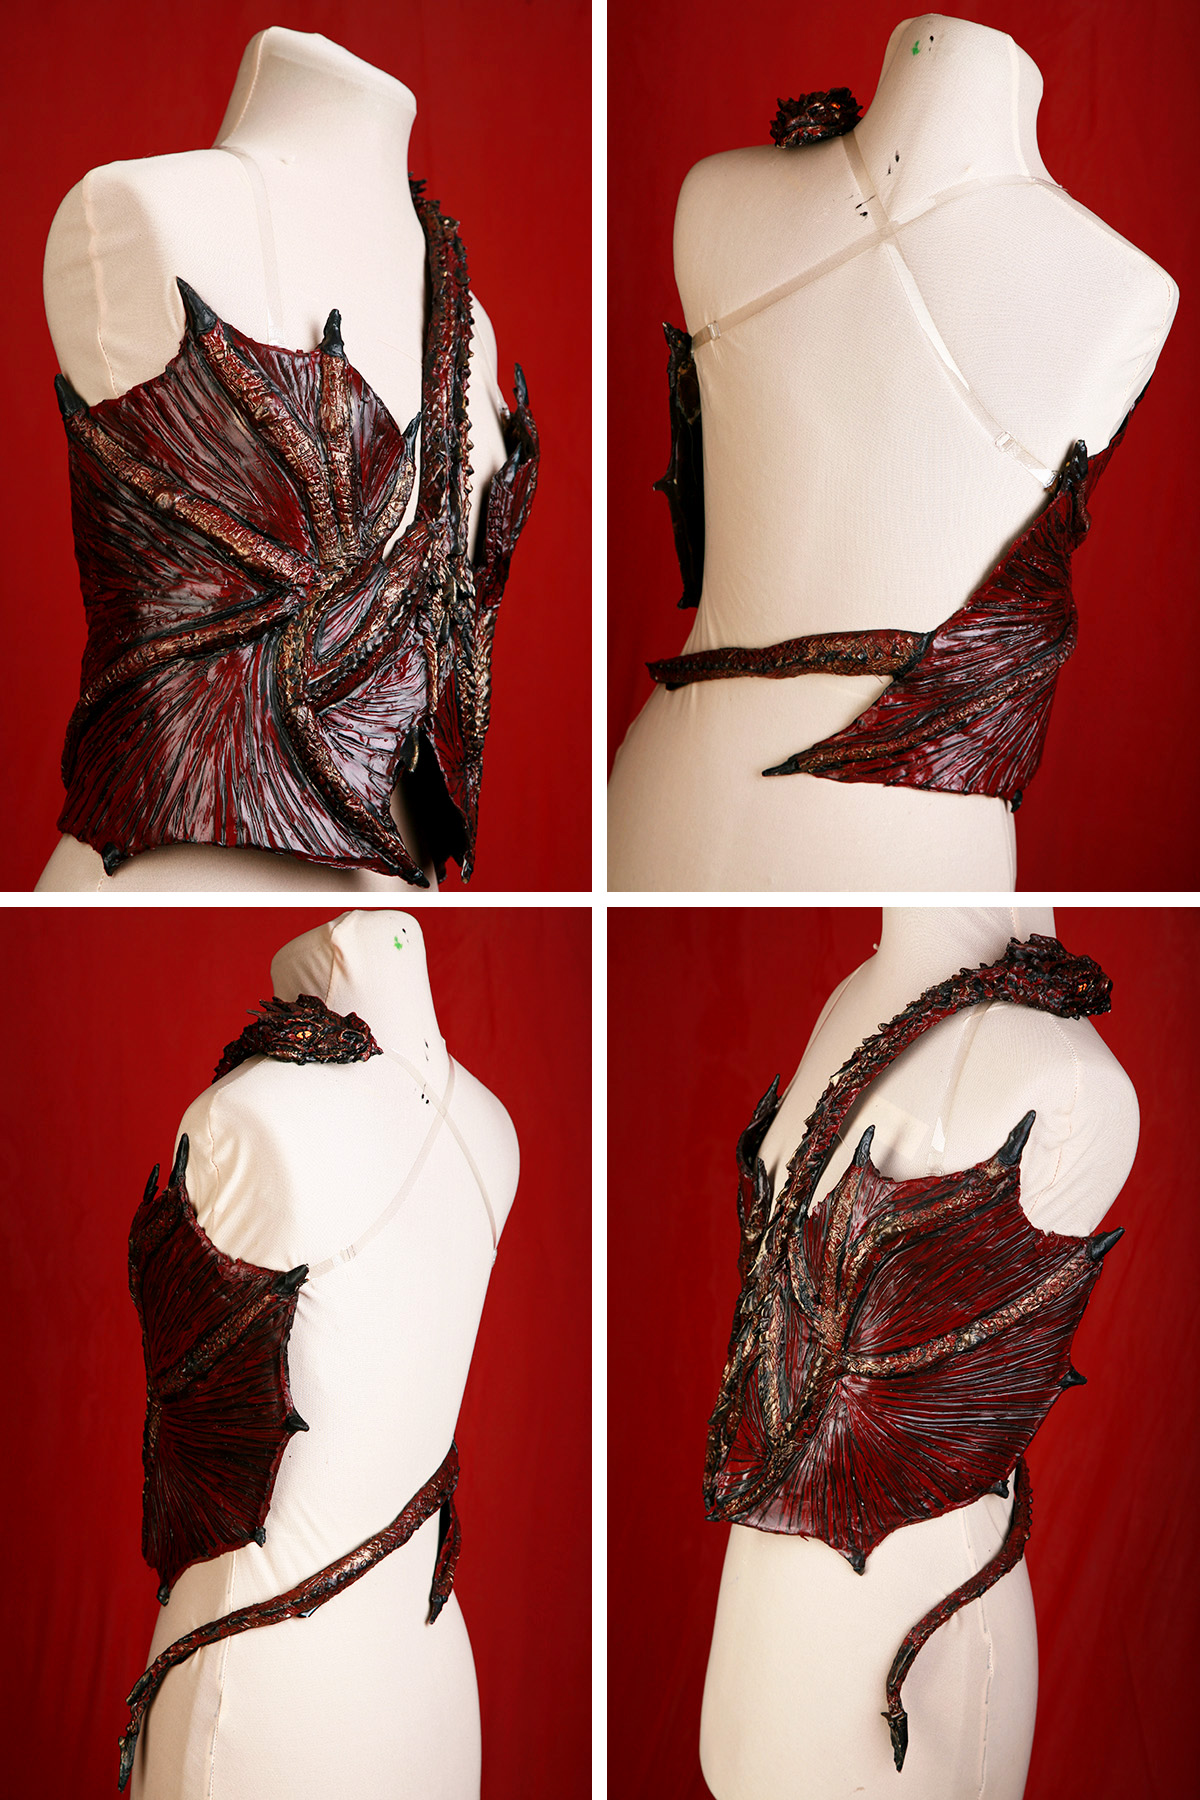 A 4 part compilation image showing the finished latex dragon top on a dress form, from 4 different views.